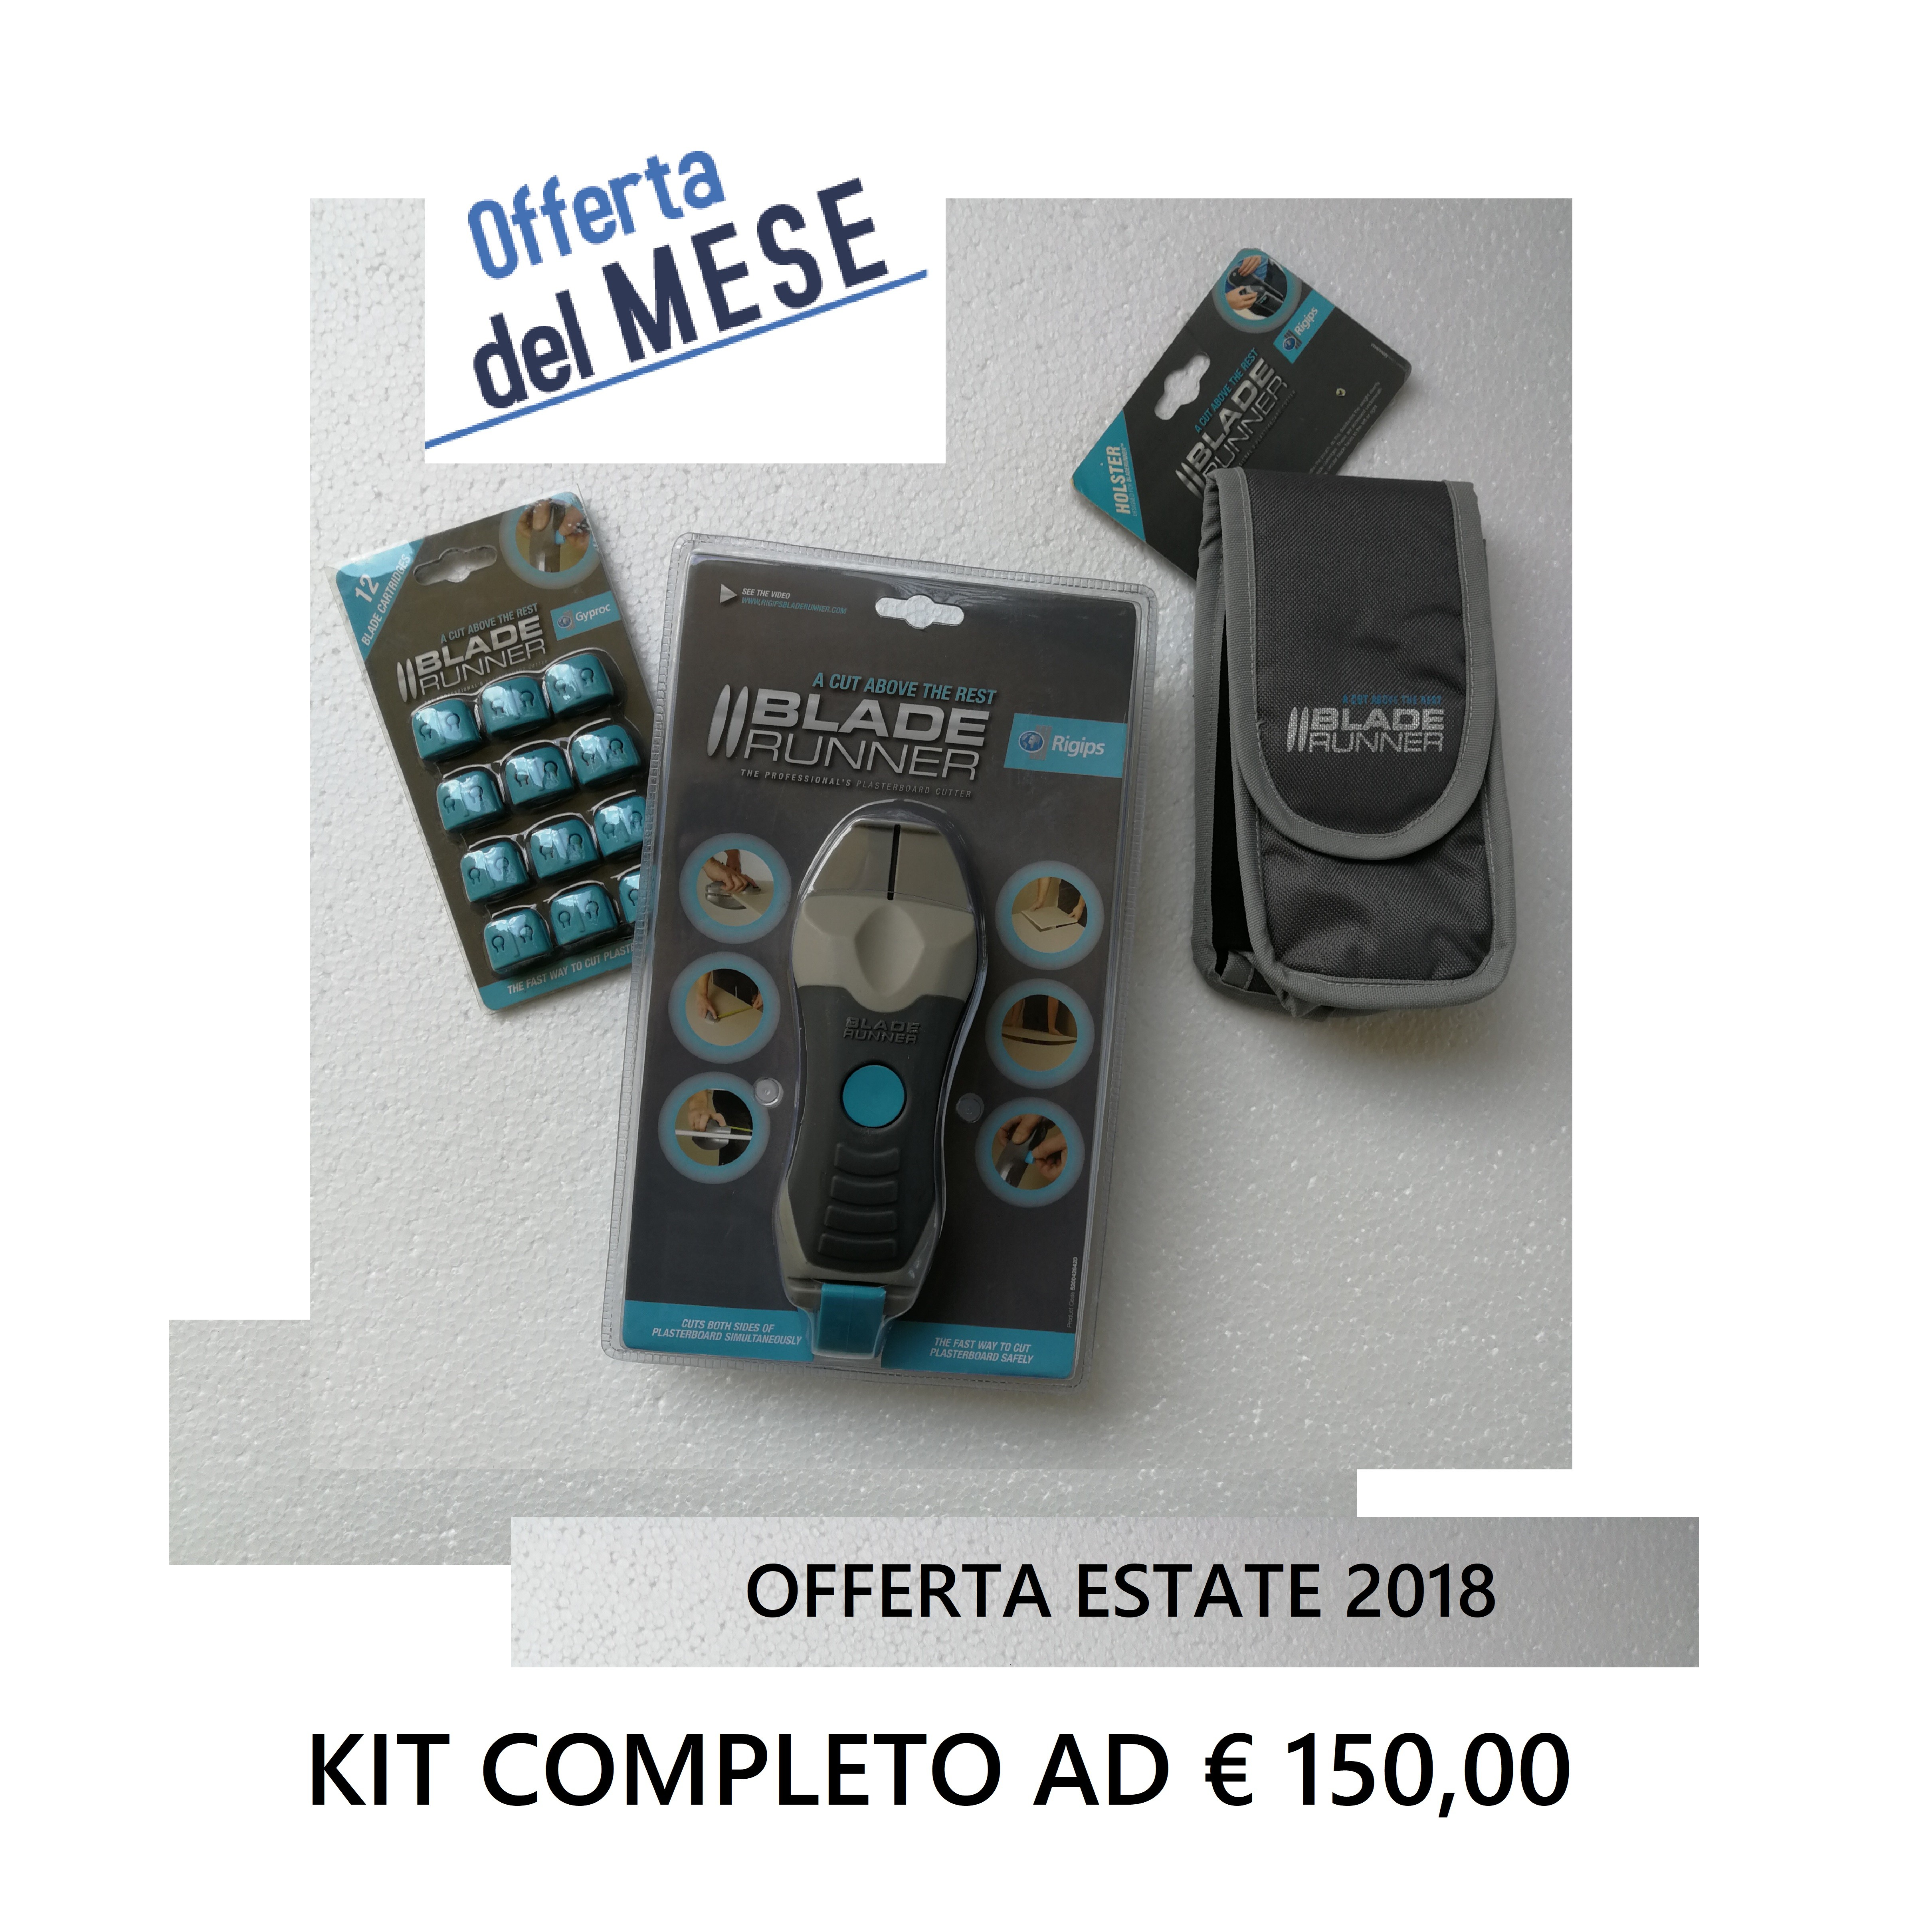 Offerta blade runner estate 2018